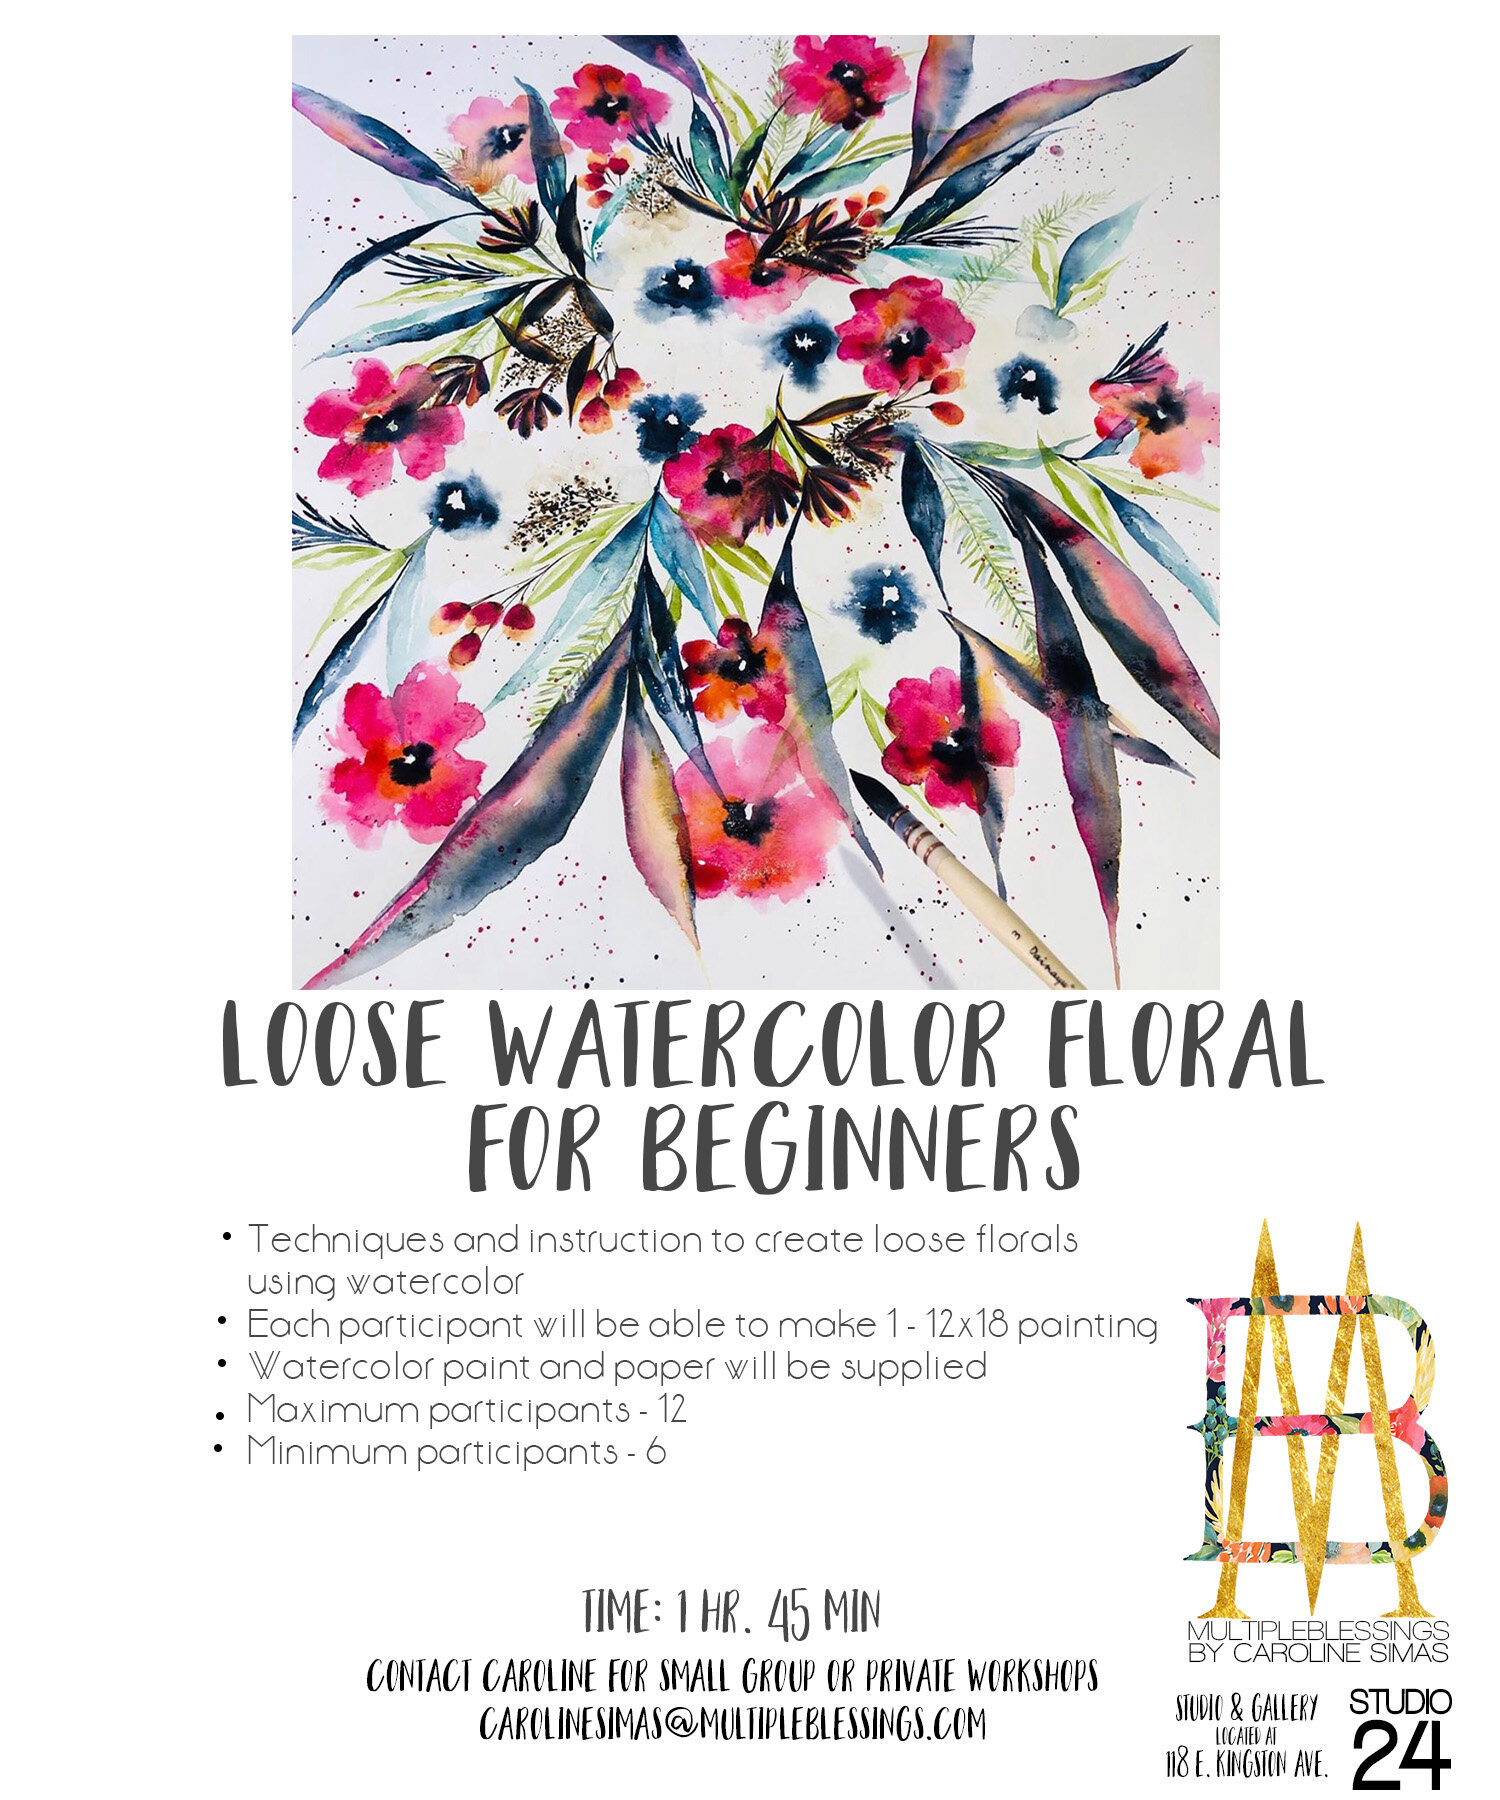 LooseWatercolorFloralForBeginners.jpg